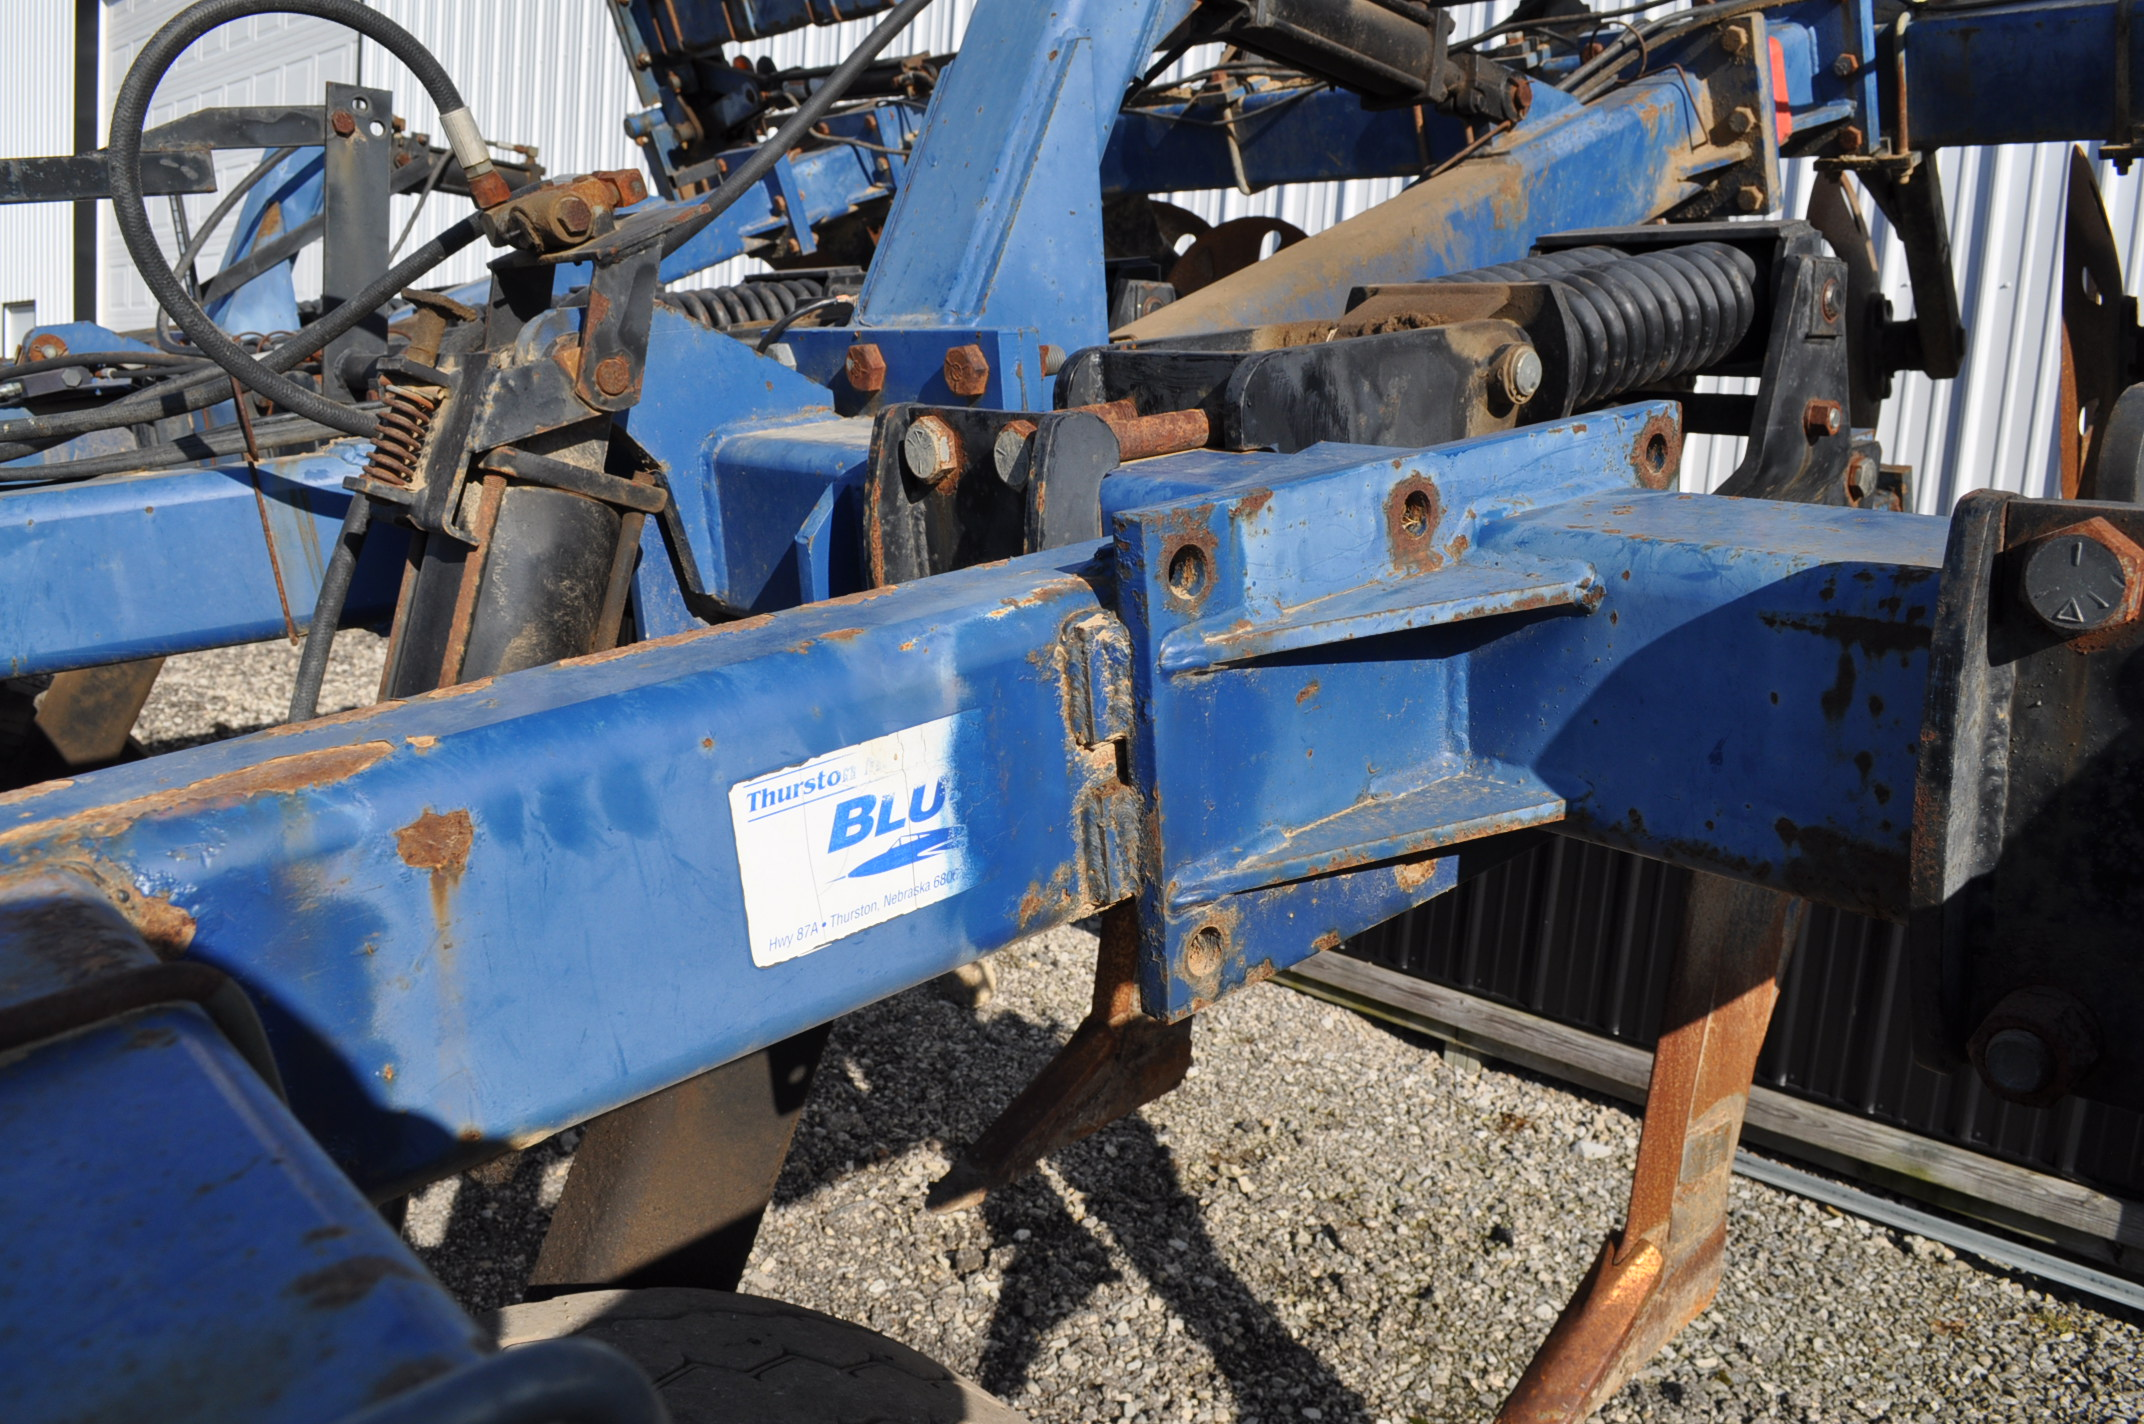 Blu-Jet Tillage Pro 7 shank inline ripper, front and rear hyd adjustable discs, sells with extra - Image 12 of 18